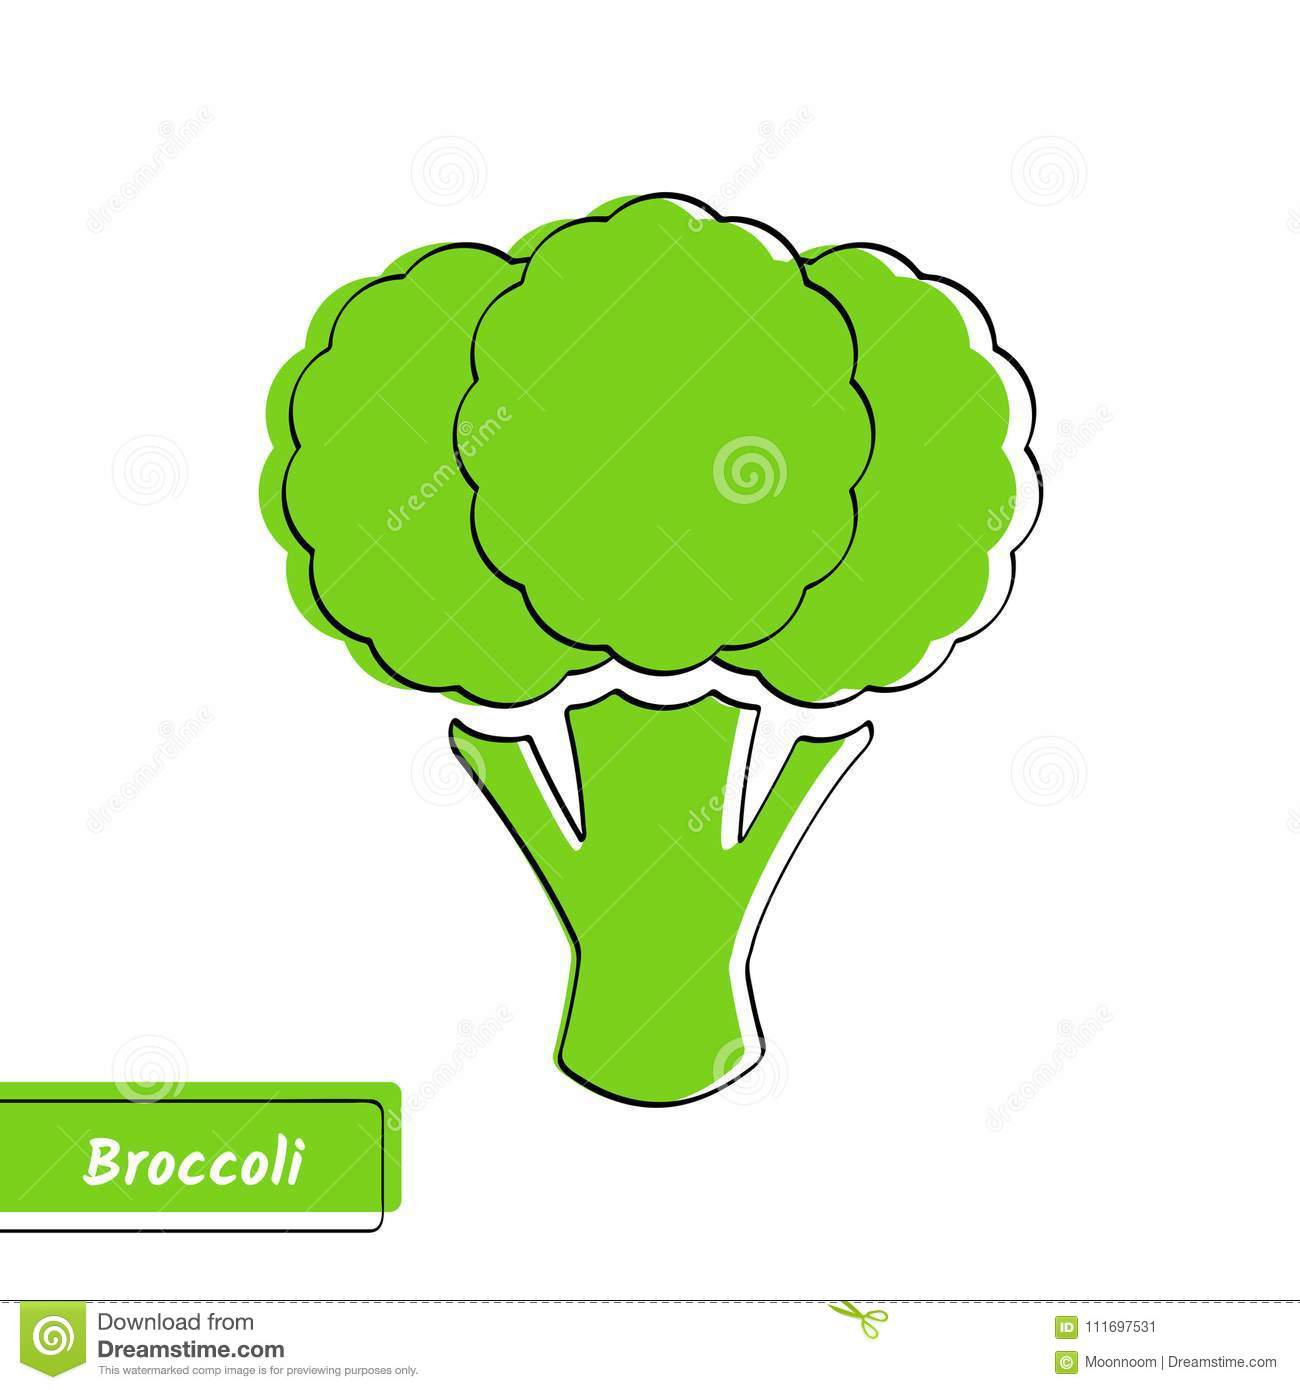 Flat Green Broccoli Market Logo With Black Contour Stock Vector